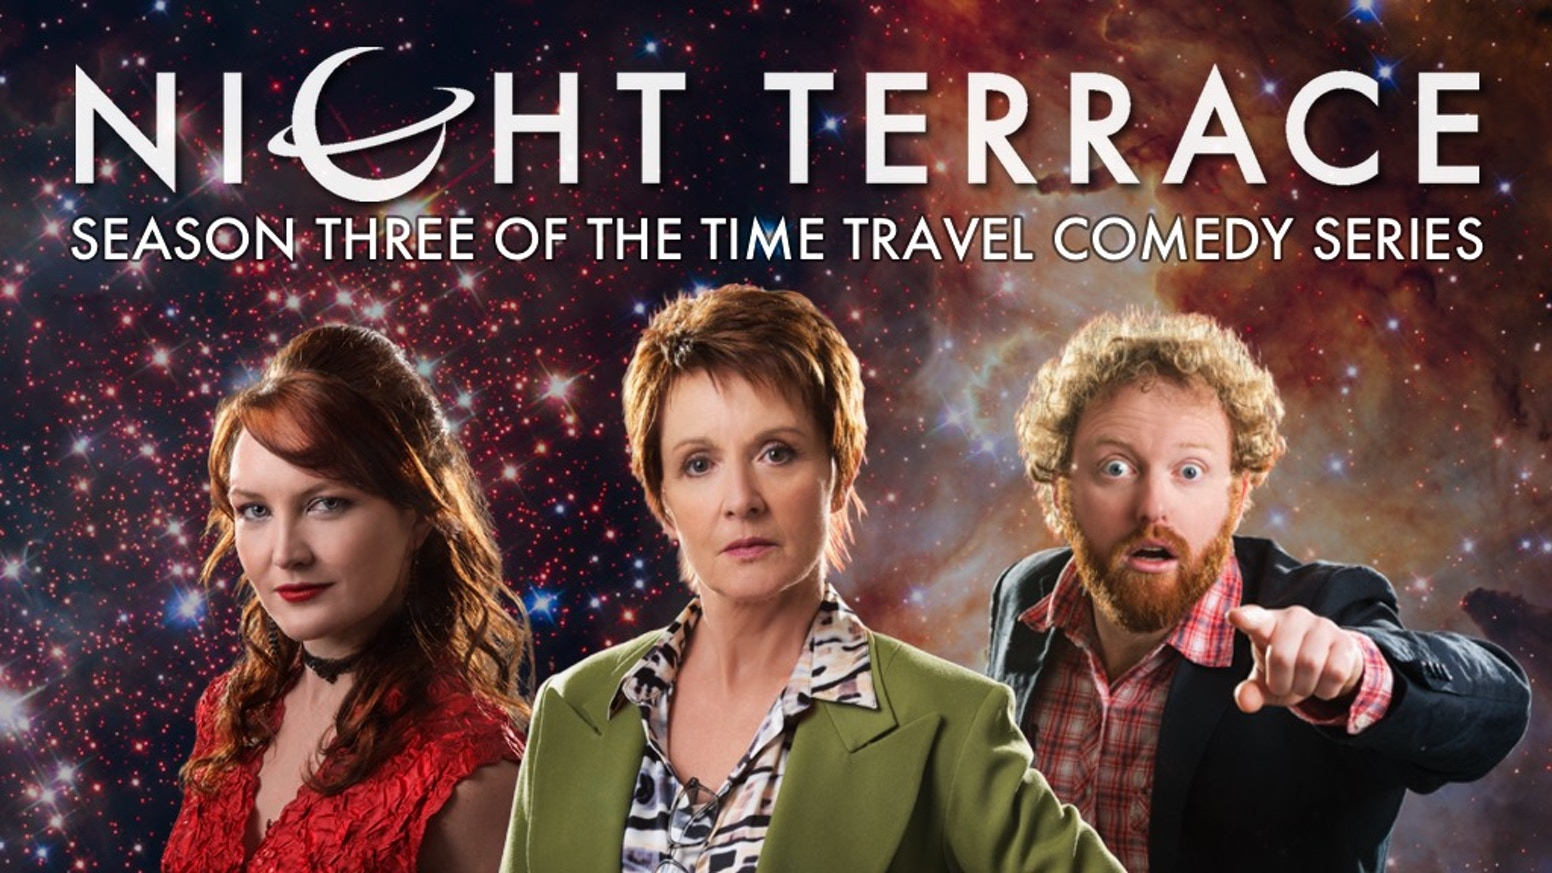 An award-winning time travel audio comedy starring Jackie Woodburne (Neighbours). Third season and new mini-series coming in 2020!